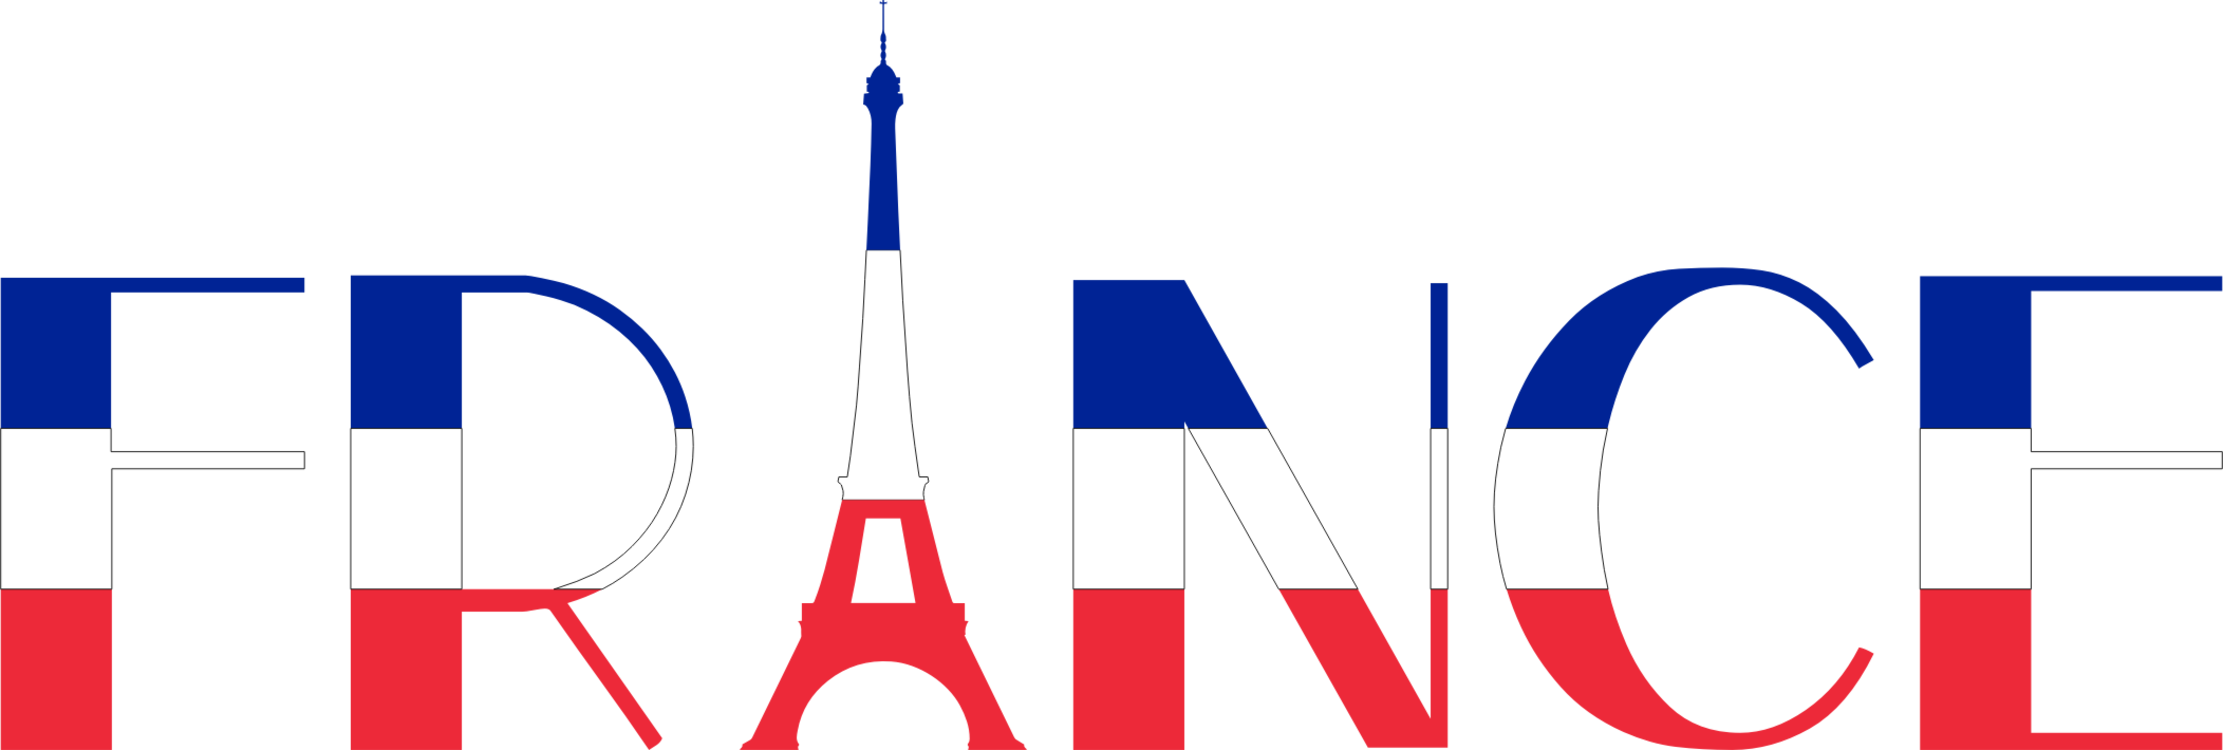 France clipart. Flag of free french